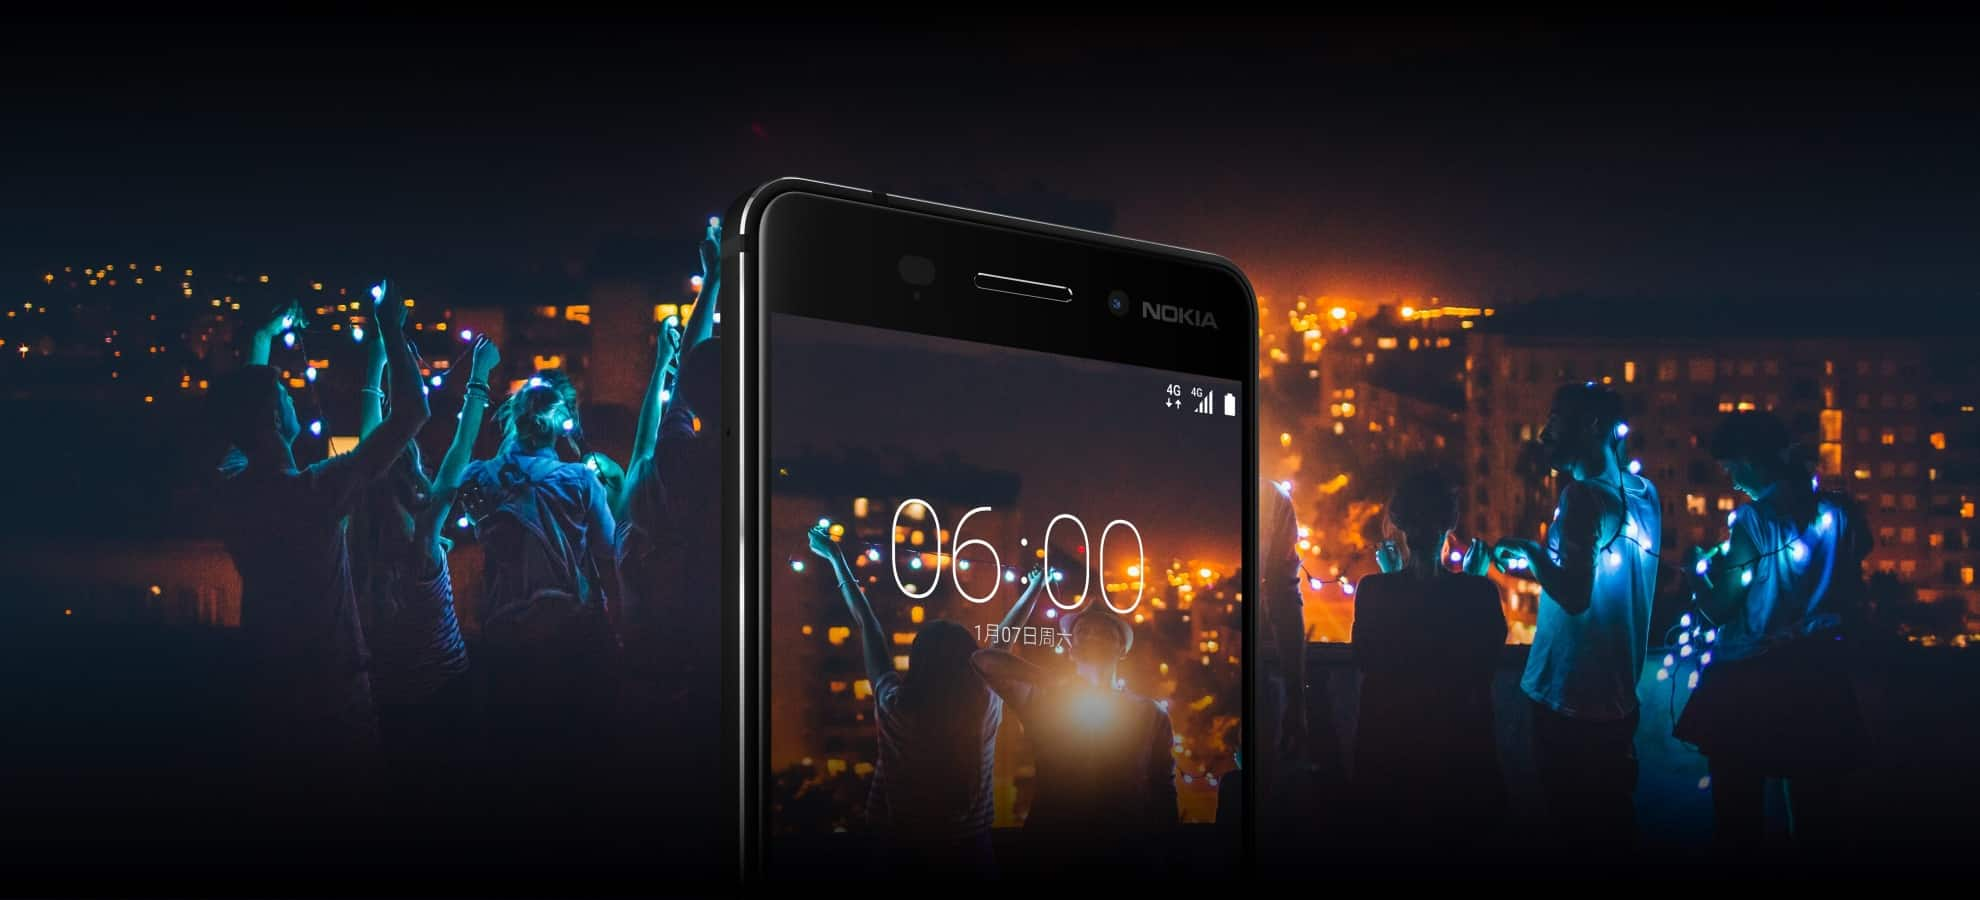 Nokia 6 New Nokia Phone Launched In China See